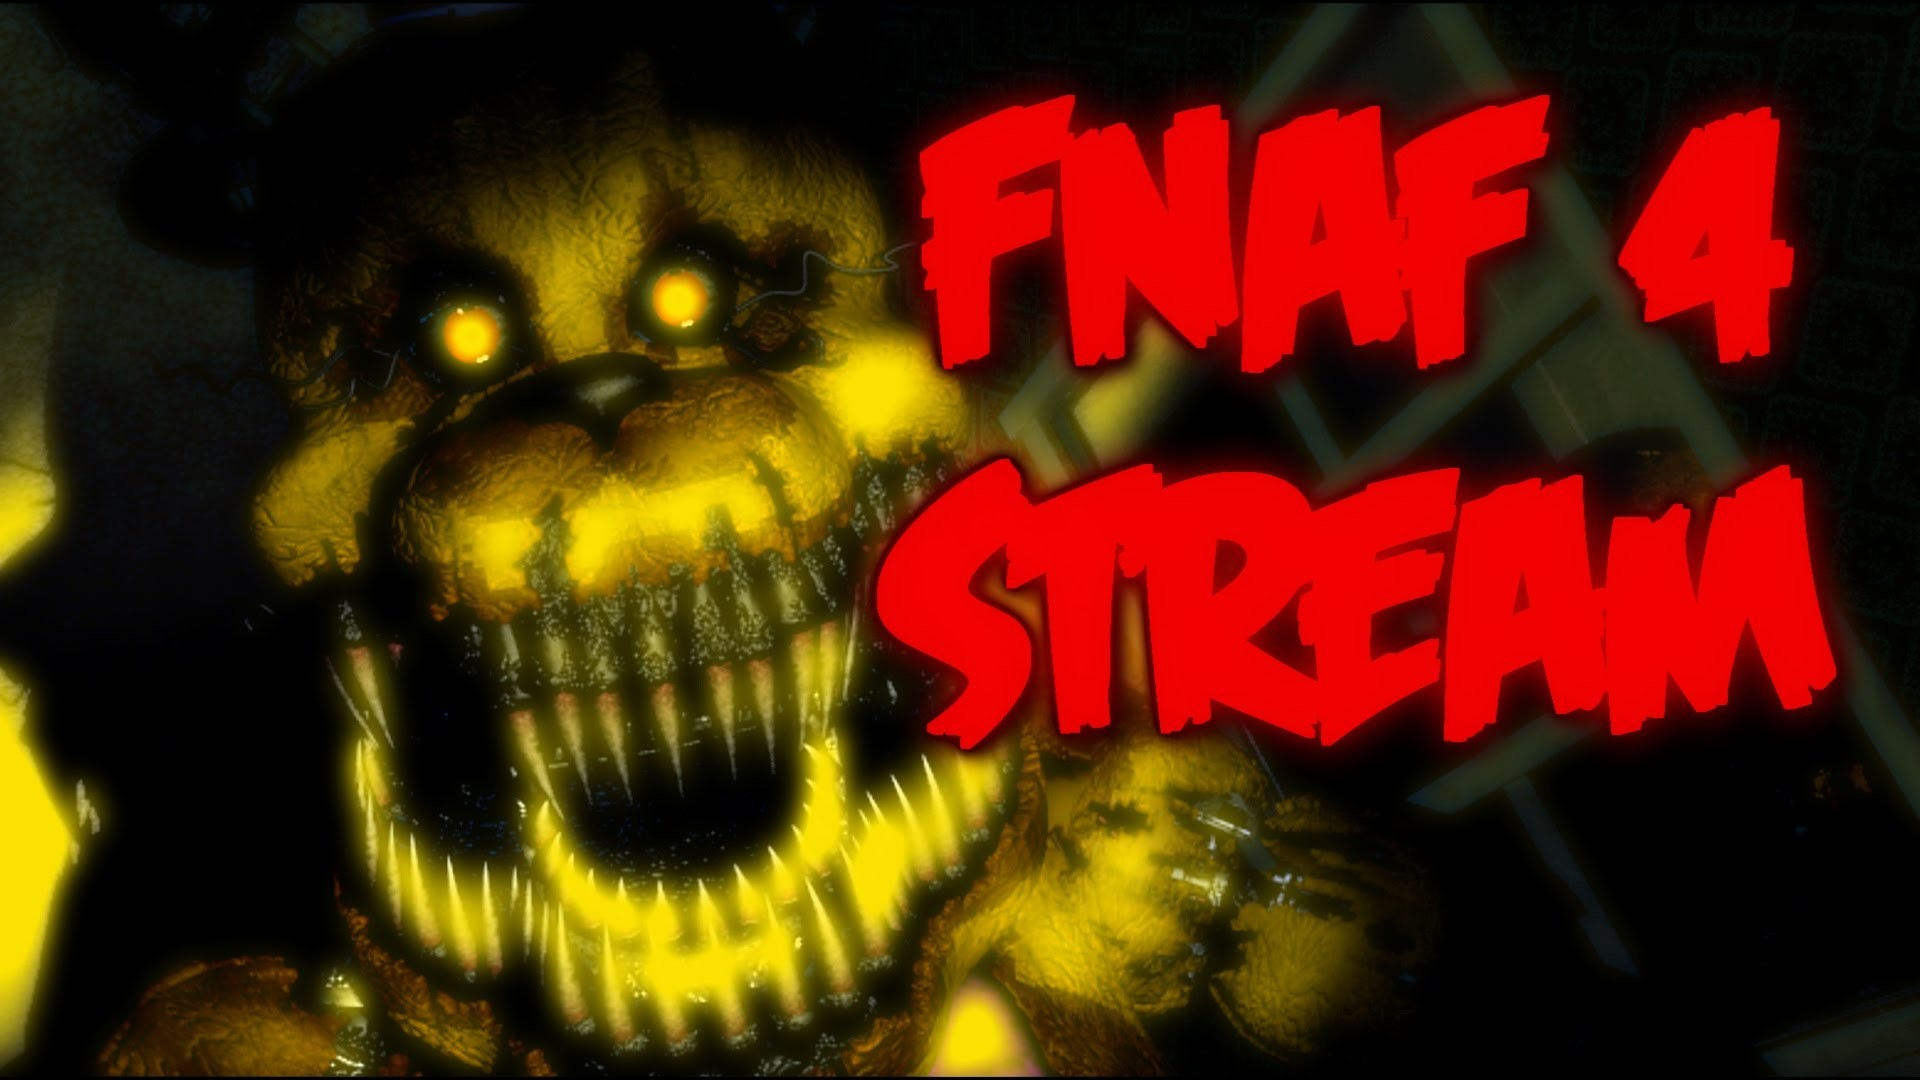 FNAF 4 HALLOWEEN LIVESTREAM! | Five Nights at Freddy's 4 Announcement